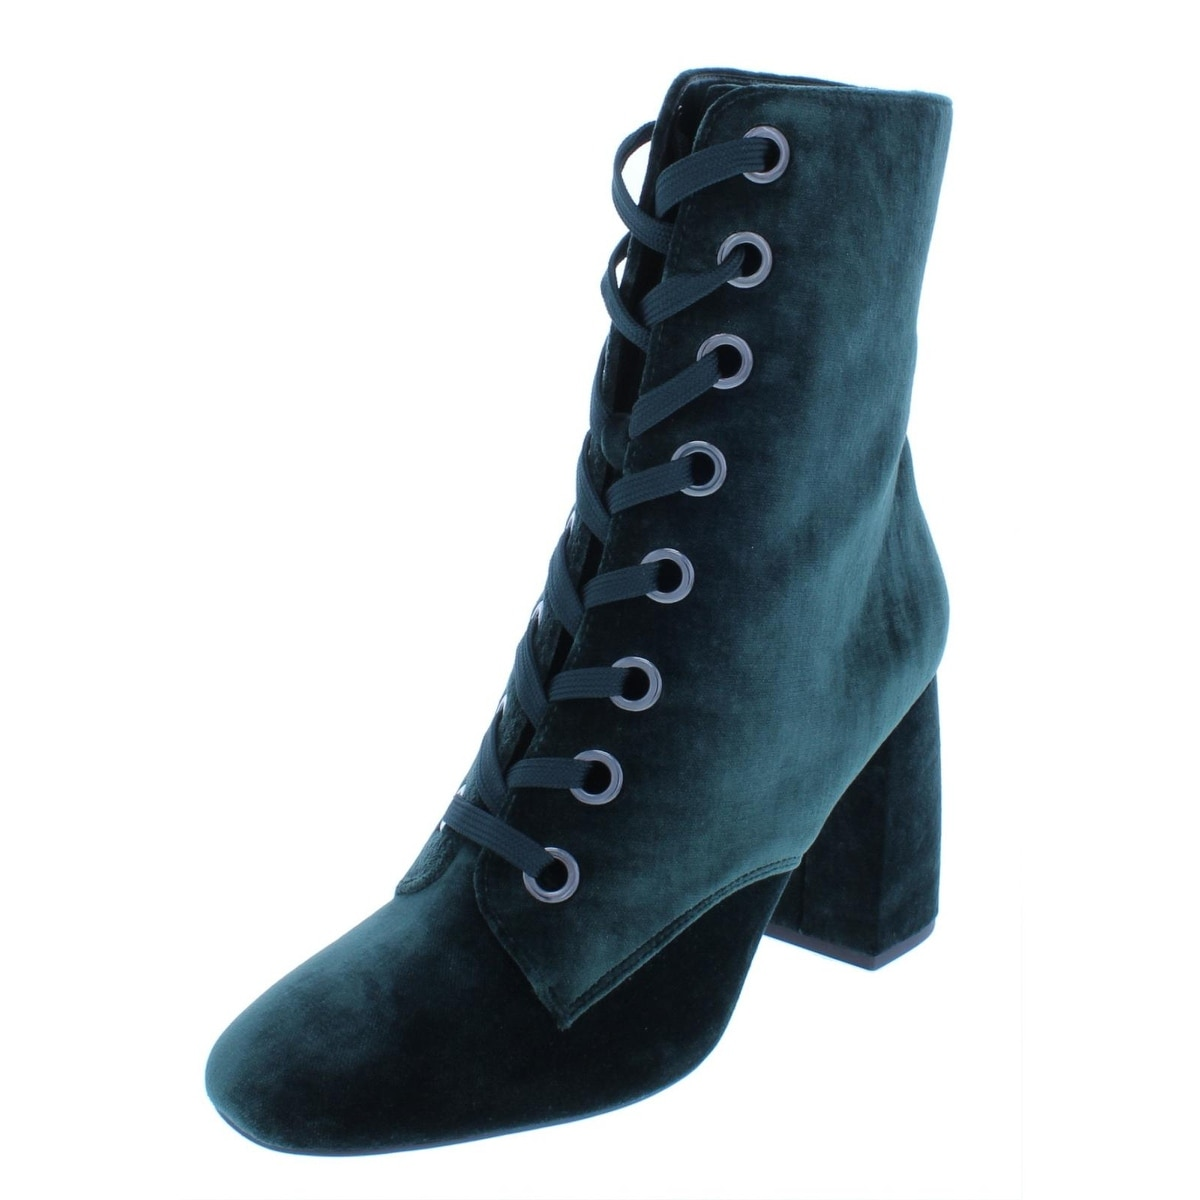 6da0c269d4641 Buy BCBGeneration Women's Boots Online at Overstock | Our Best ...